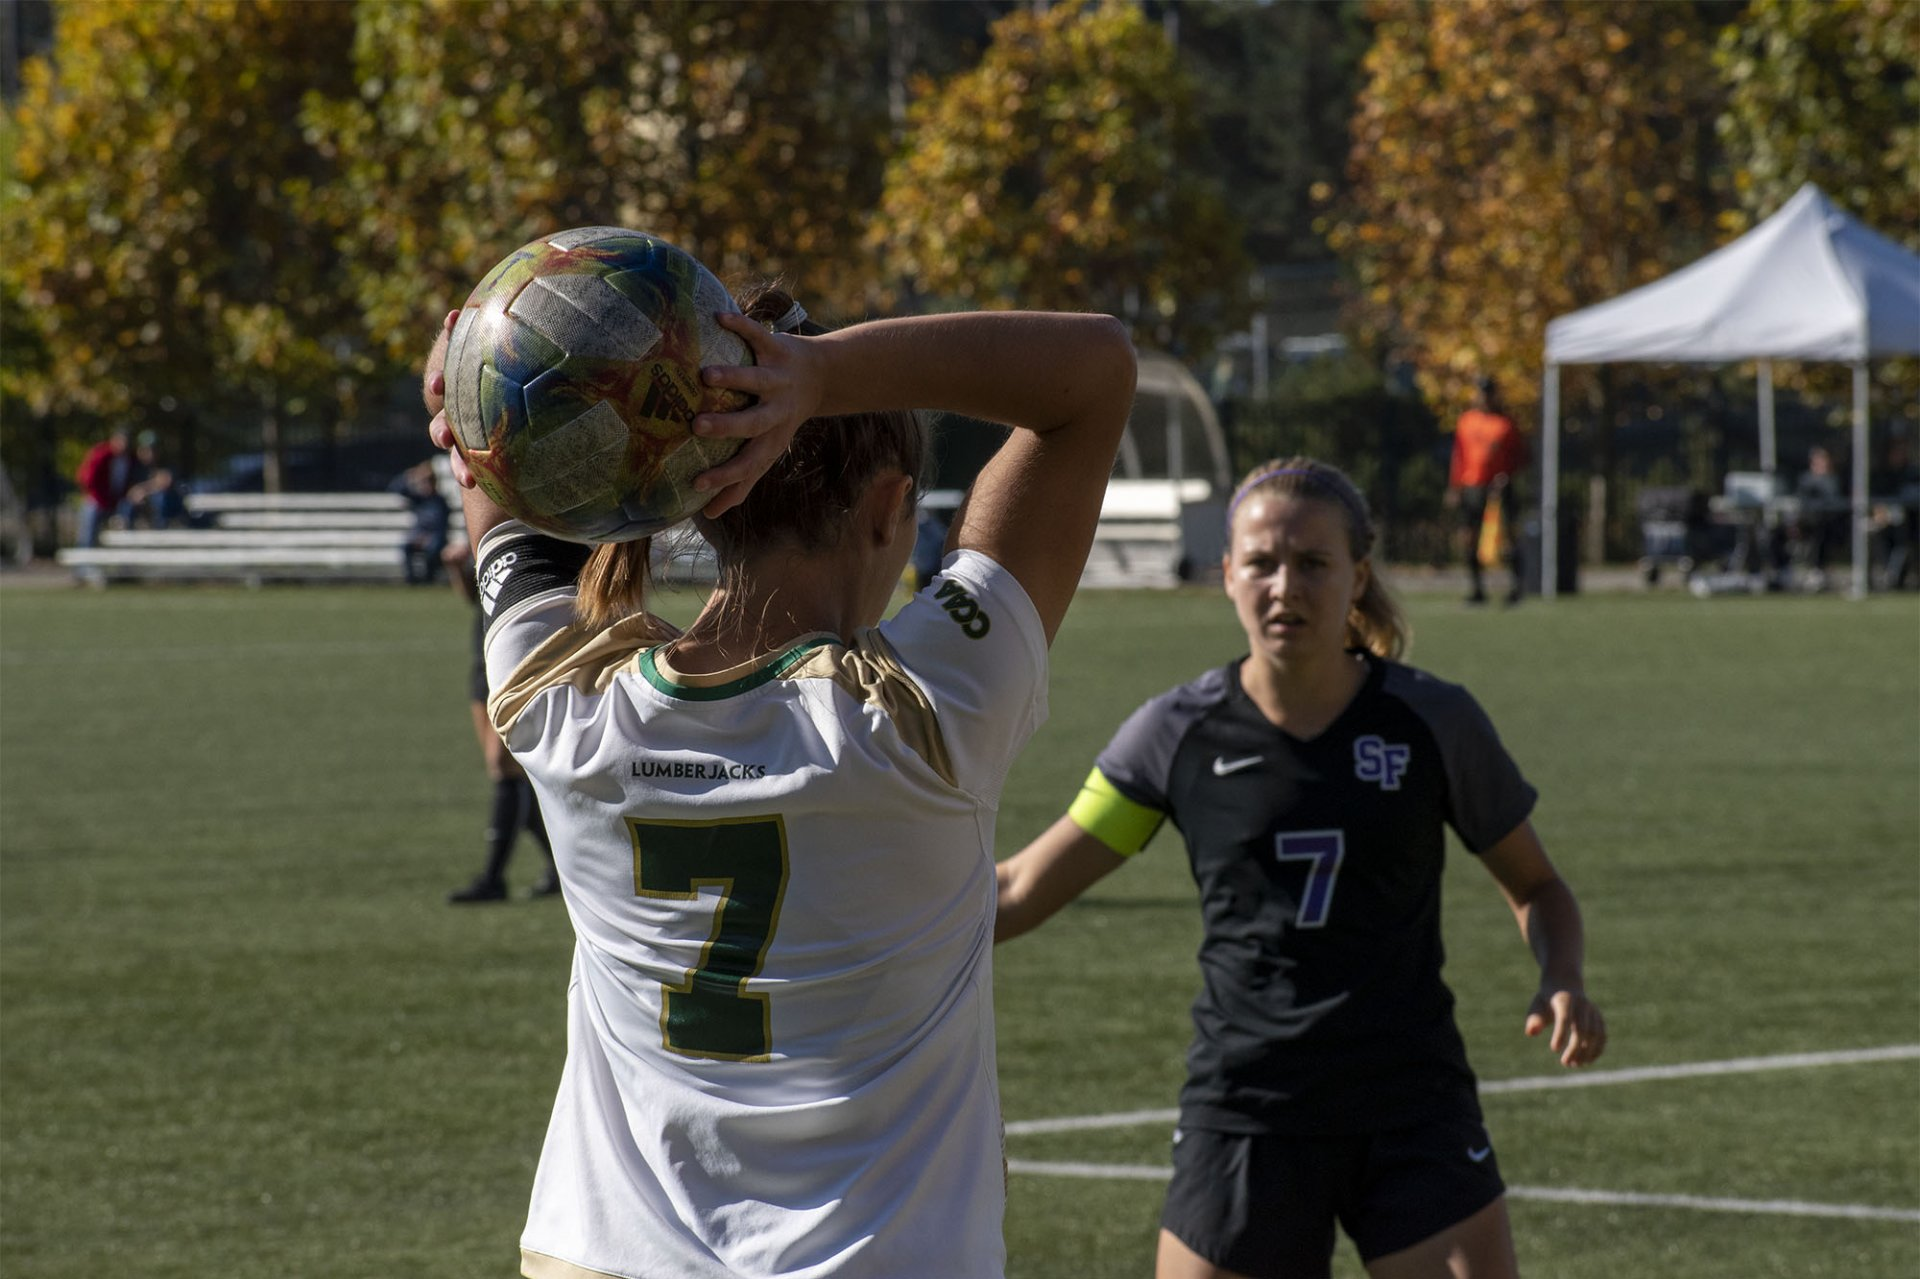 #7 Rose Harman takes the throw-in as Kylie Schneider watches. Humboldt State played San Francisco State at College Creek Field and won in overtime 1-0. | Photo by Liam Warner